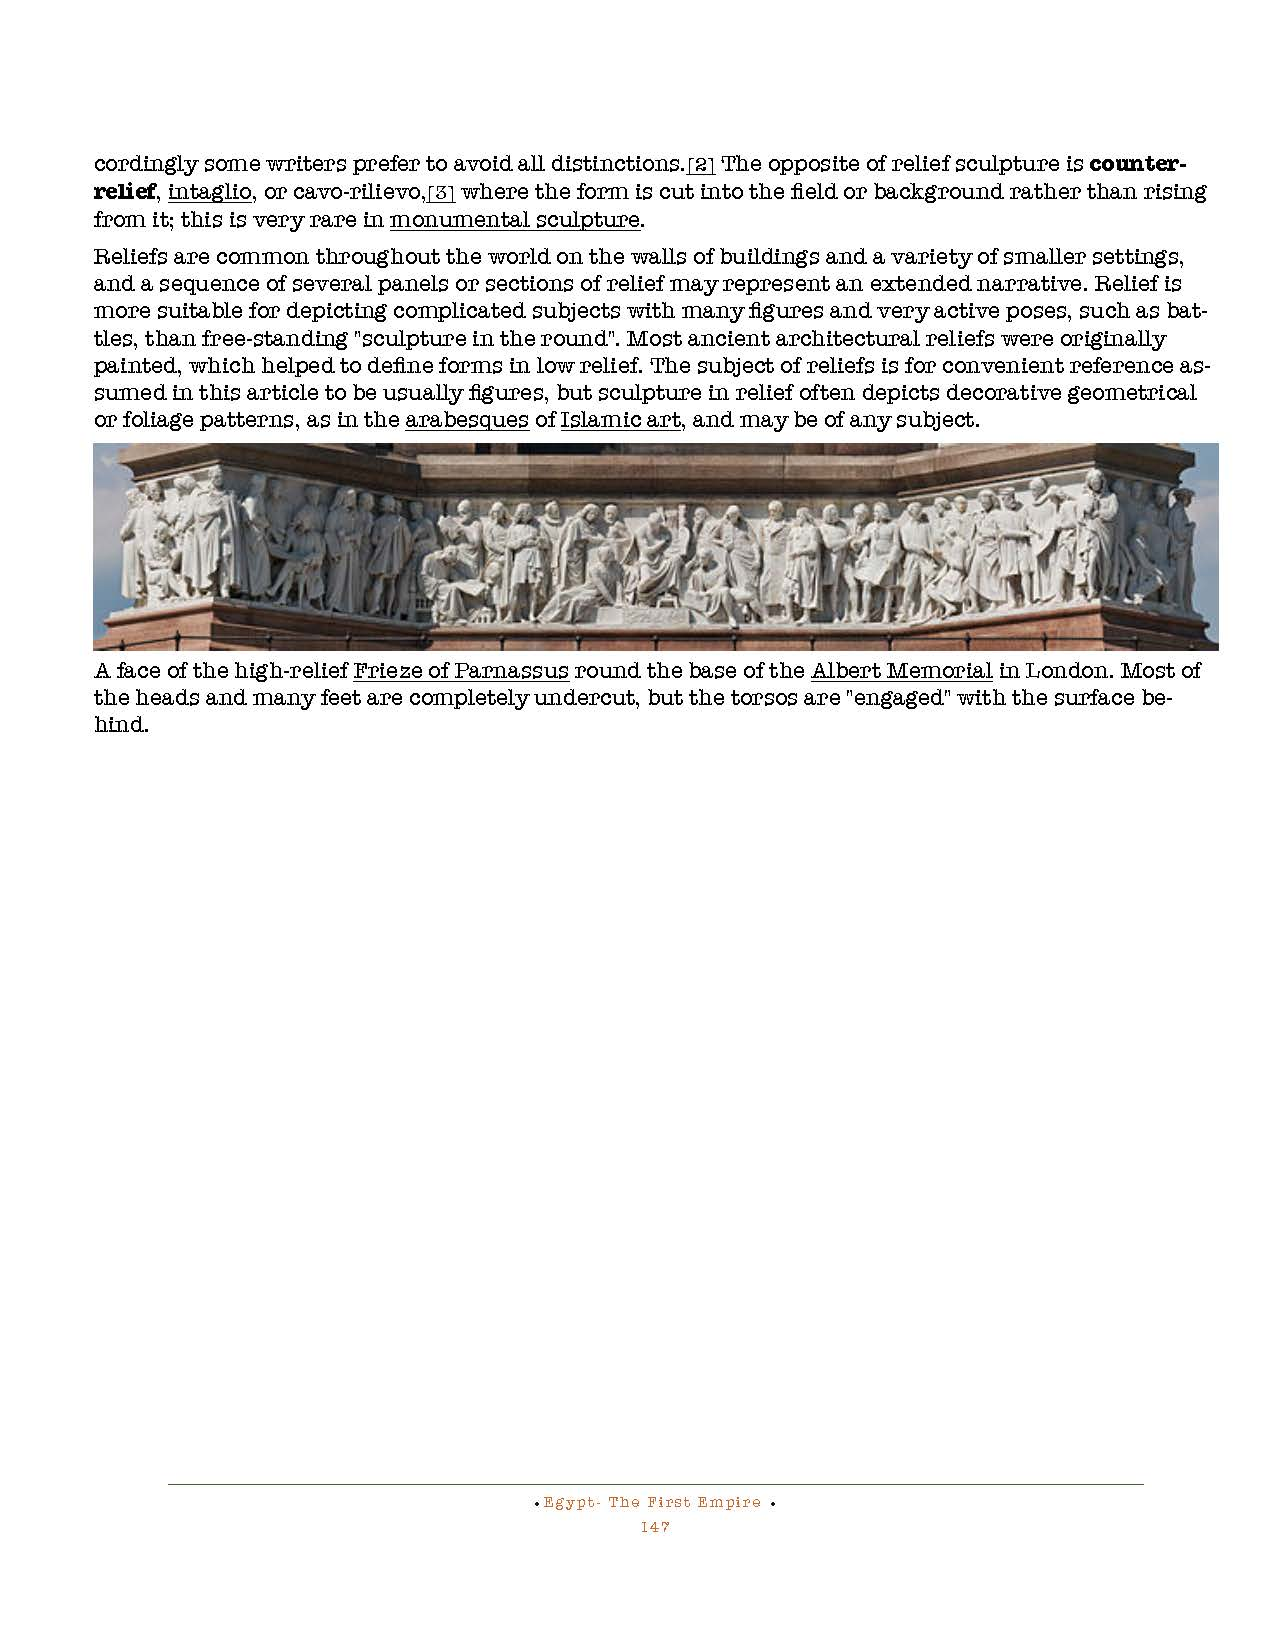 HOCE- Egypt  (First Empire) Notes_Page_147.jpg